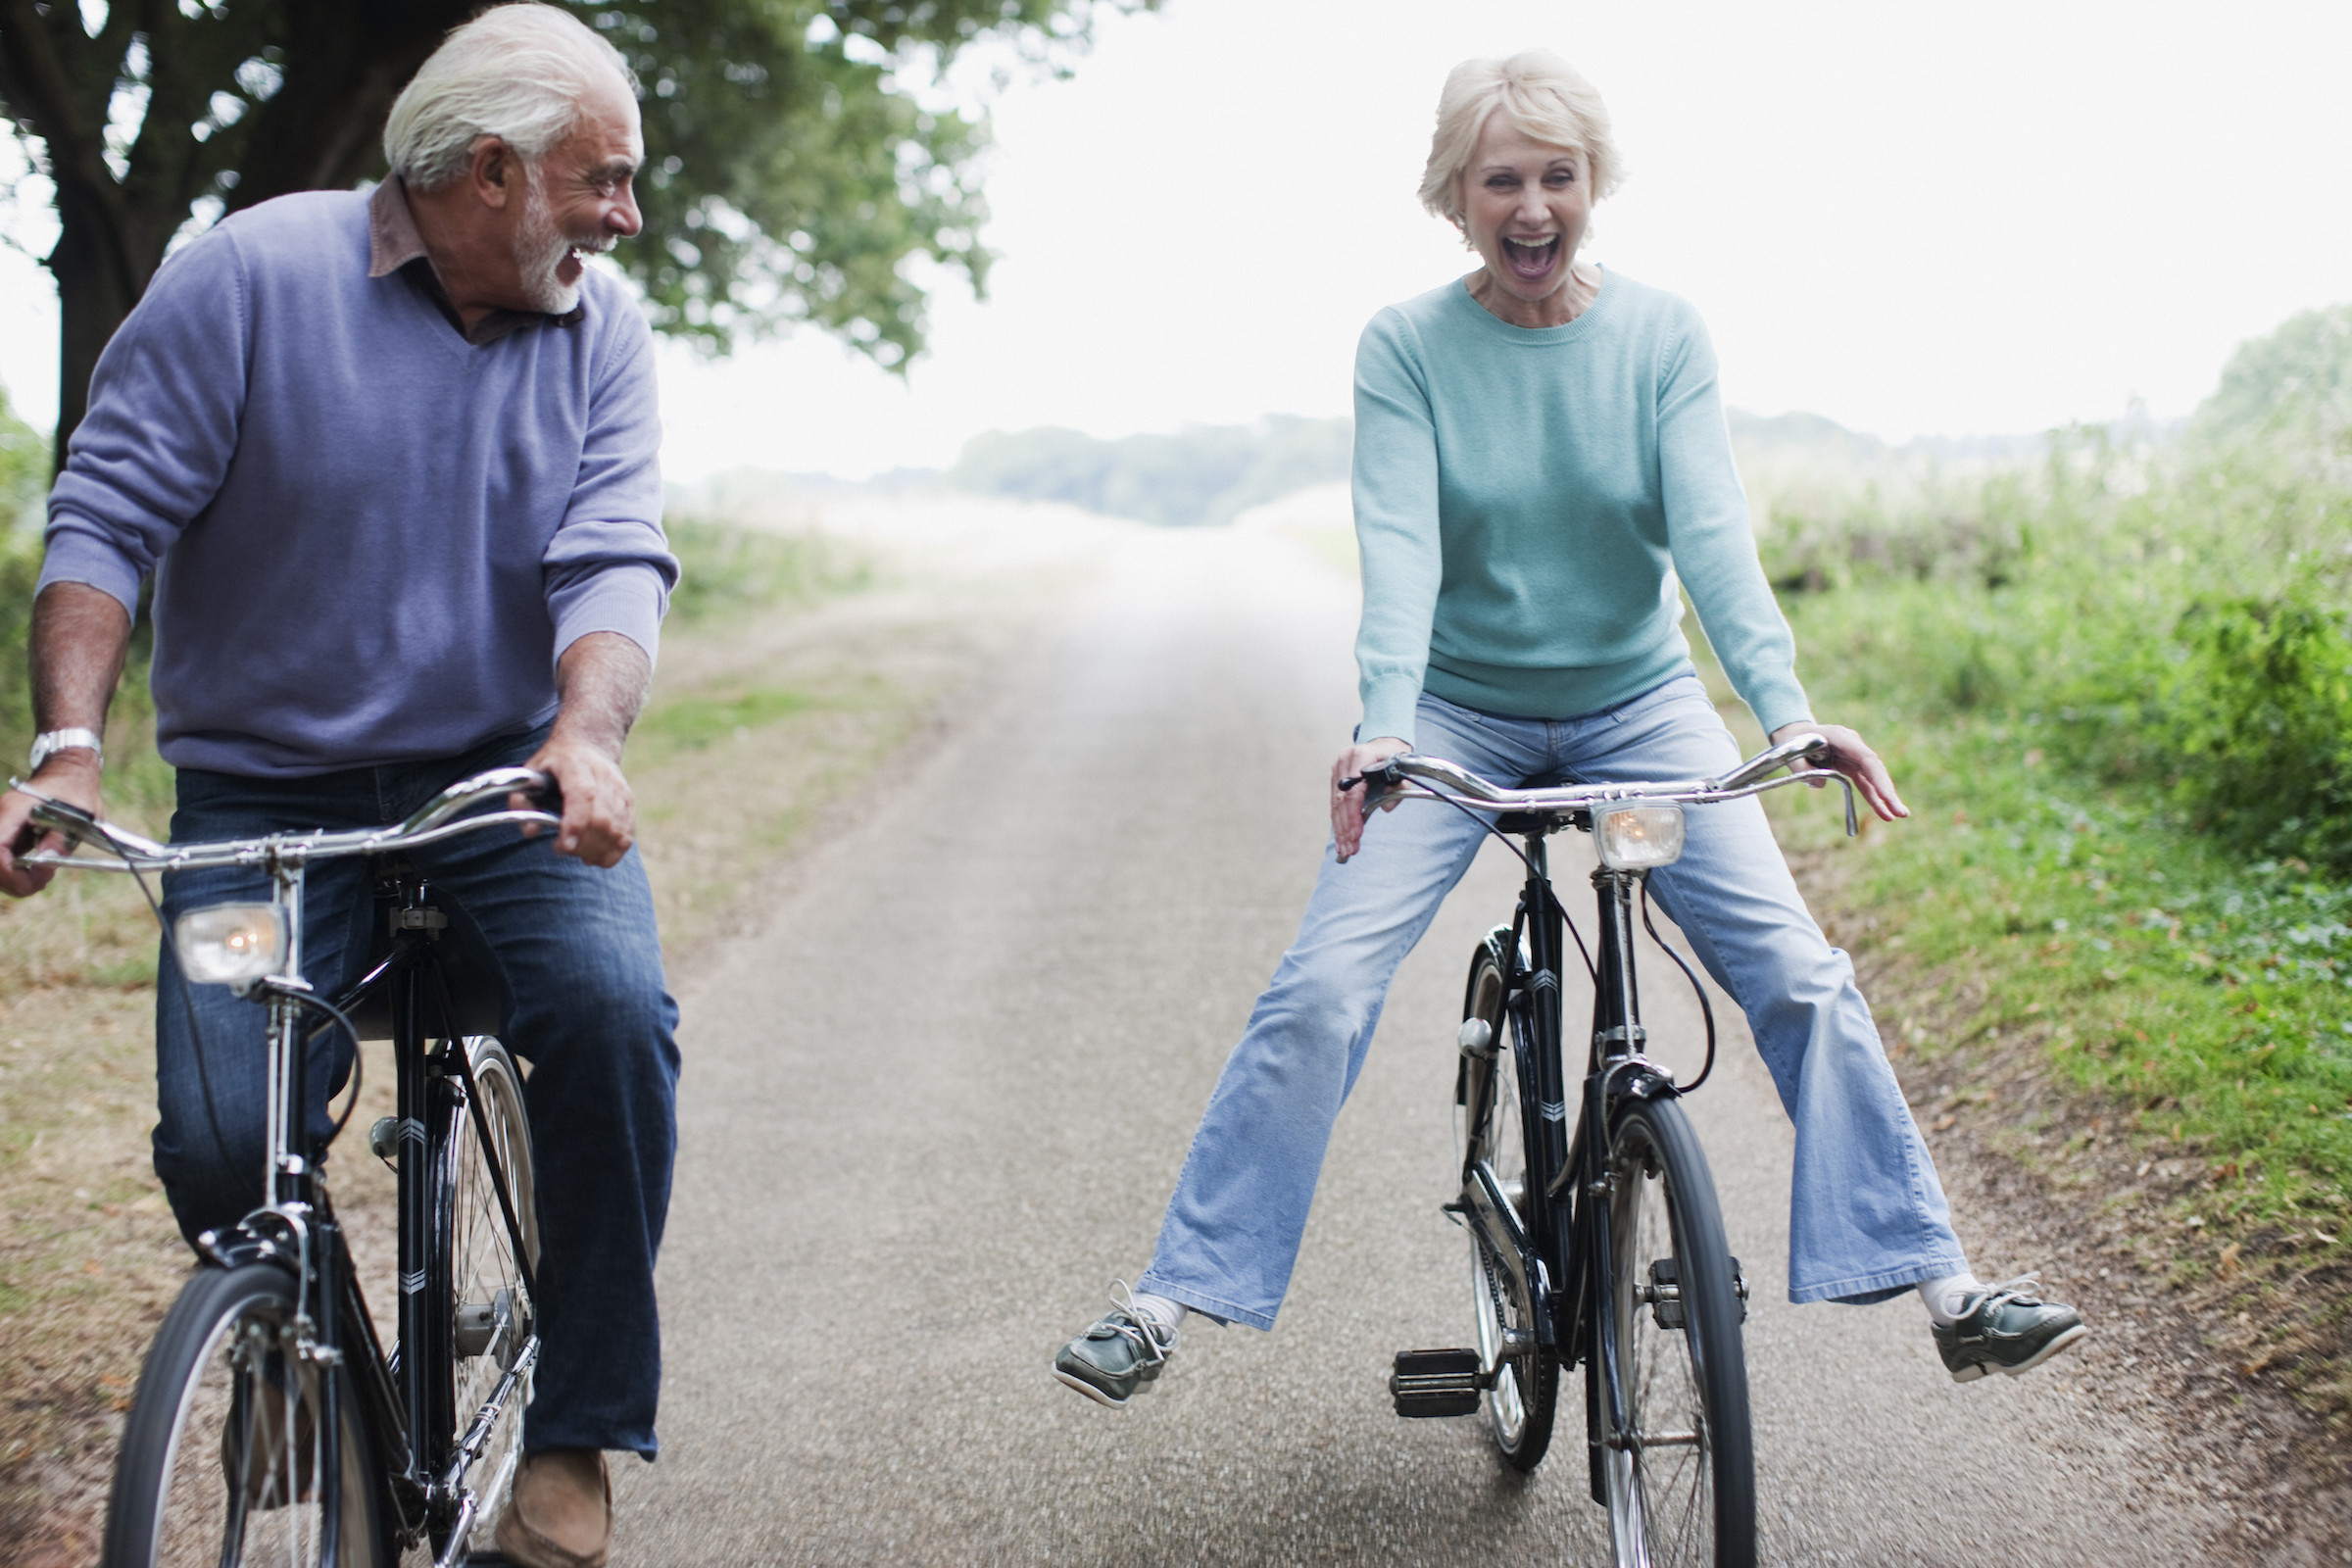 Man and woman riding bicycles